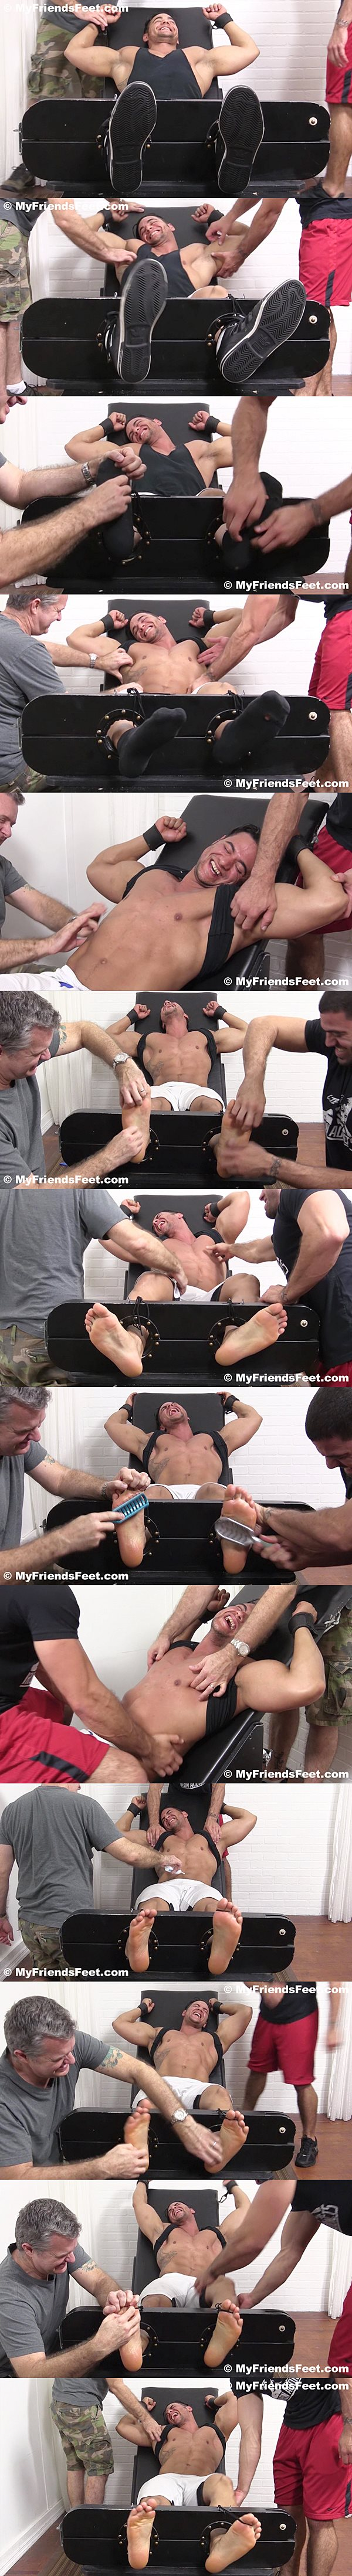 Sexy muscle jock Tony Rock gets tied up and tickled by Ricky Larkin and another foot master until he goes crazy at Myfriendsfeet 02